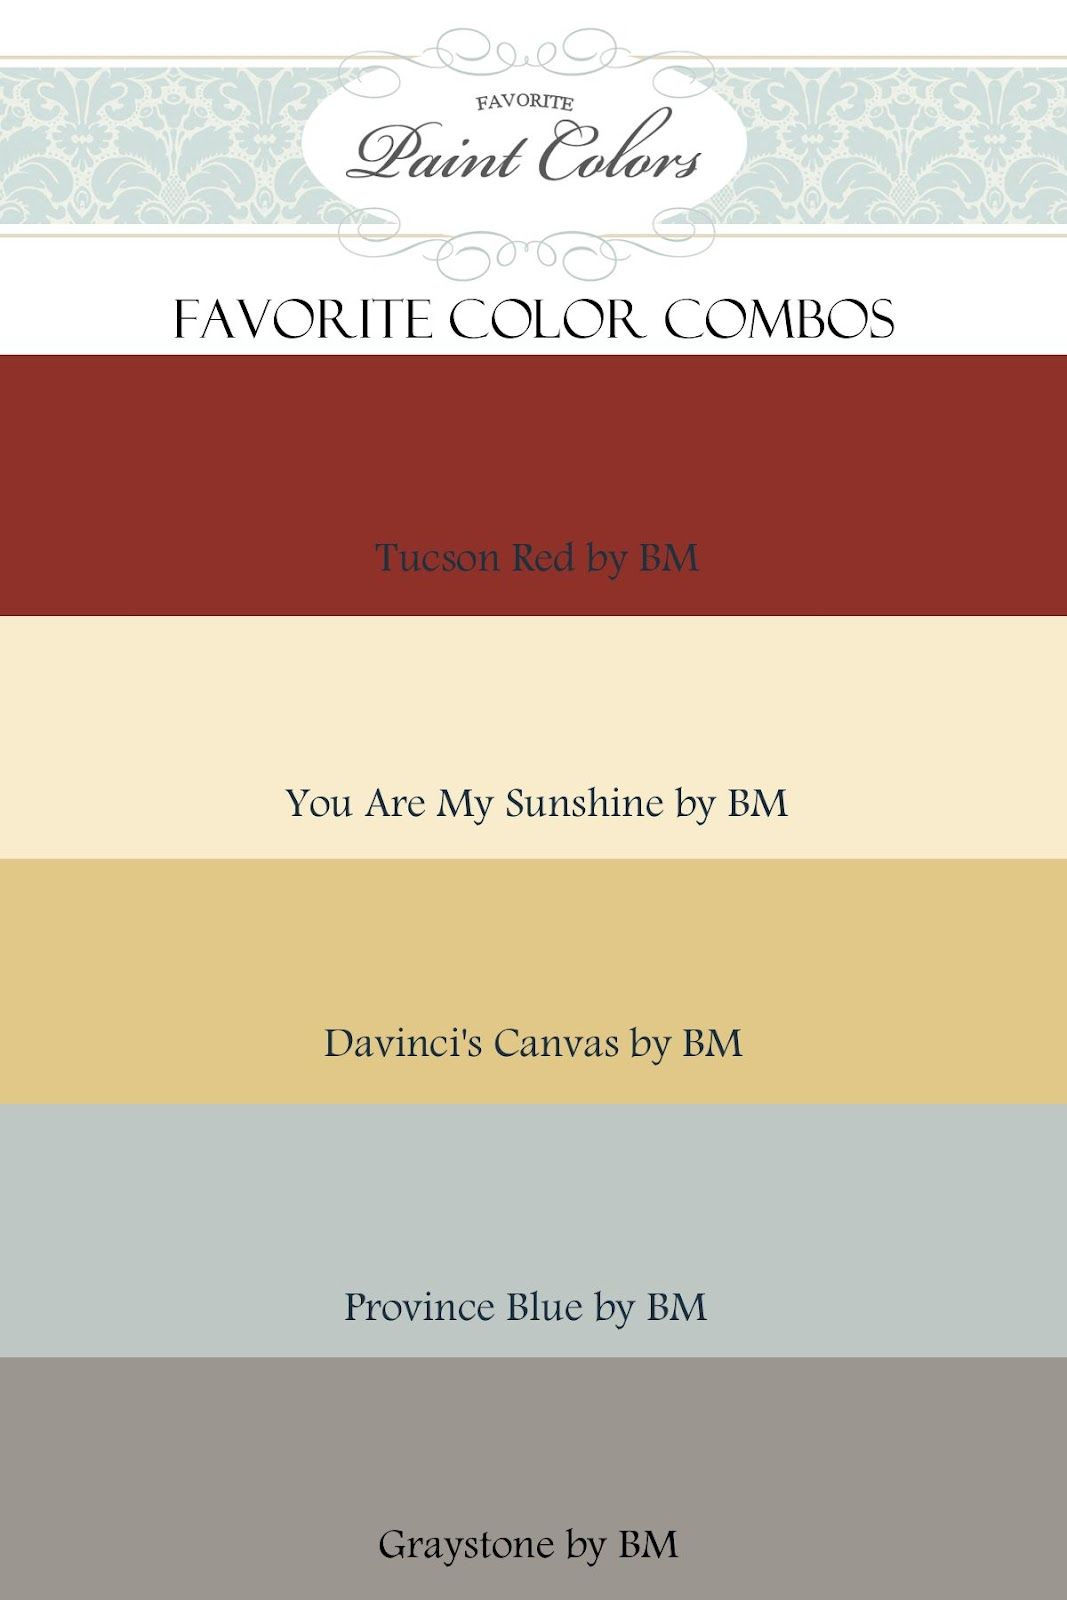 Color Combinations for Tucson Red | Favorite Paint Colors Blog ...